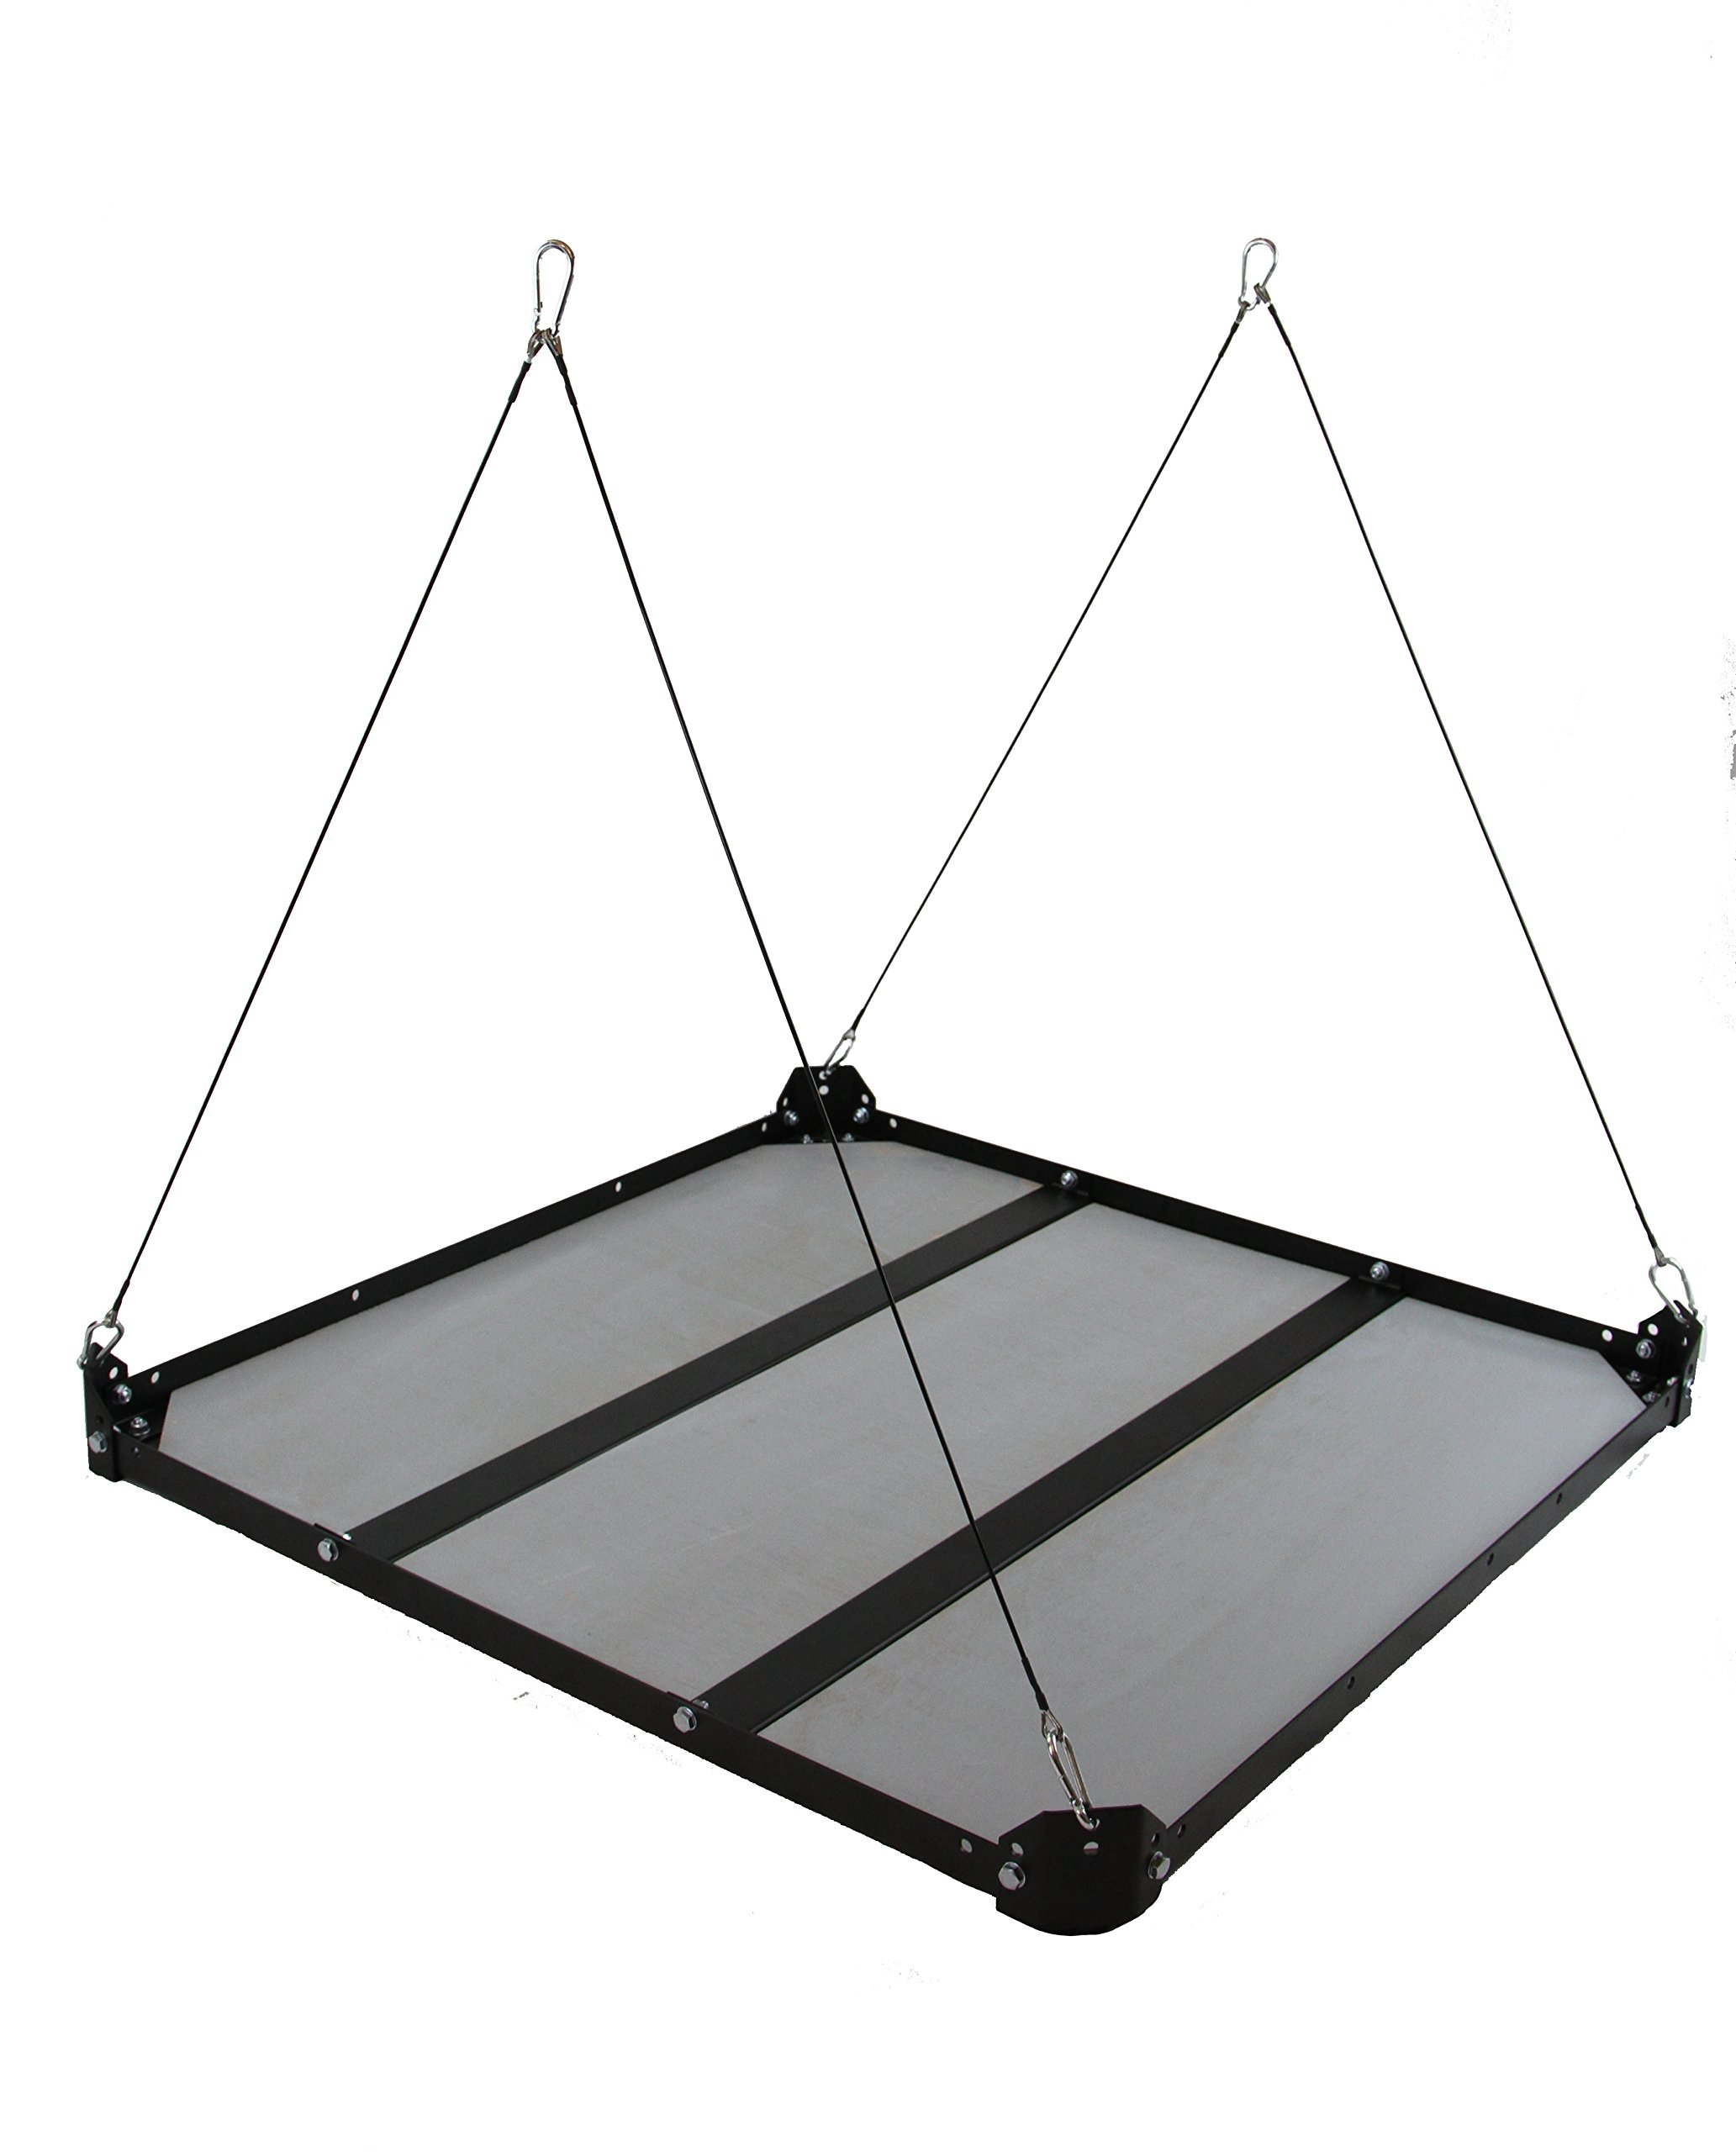 myLIFTER PF0002 Single Platform Kit, For Lifting Boxes, Totes, Garage Storage, Sporting Equipment and More